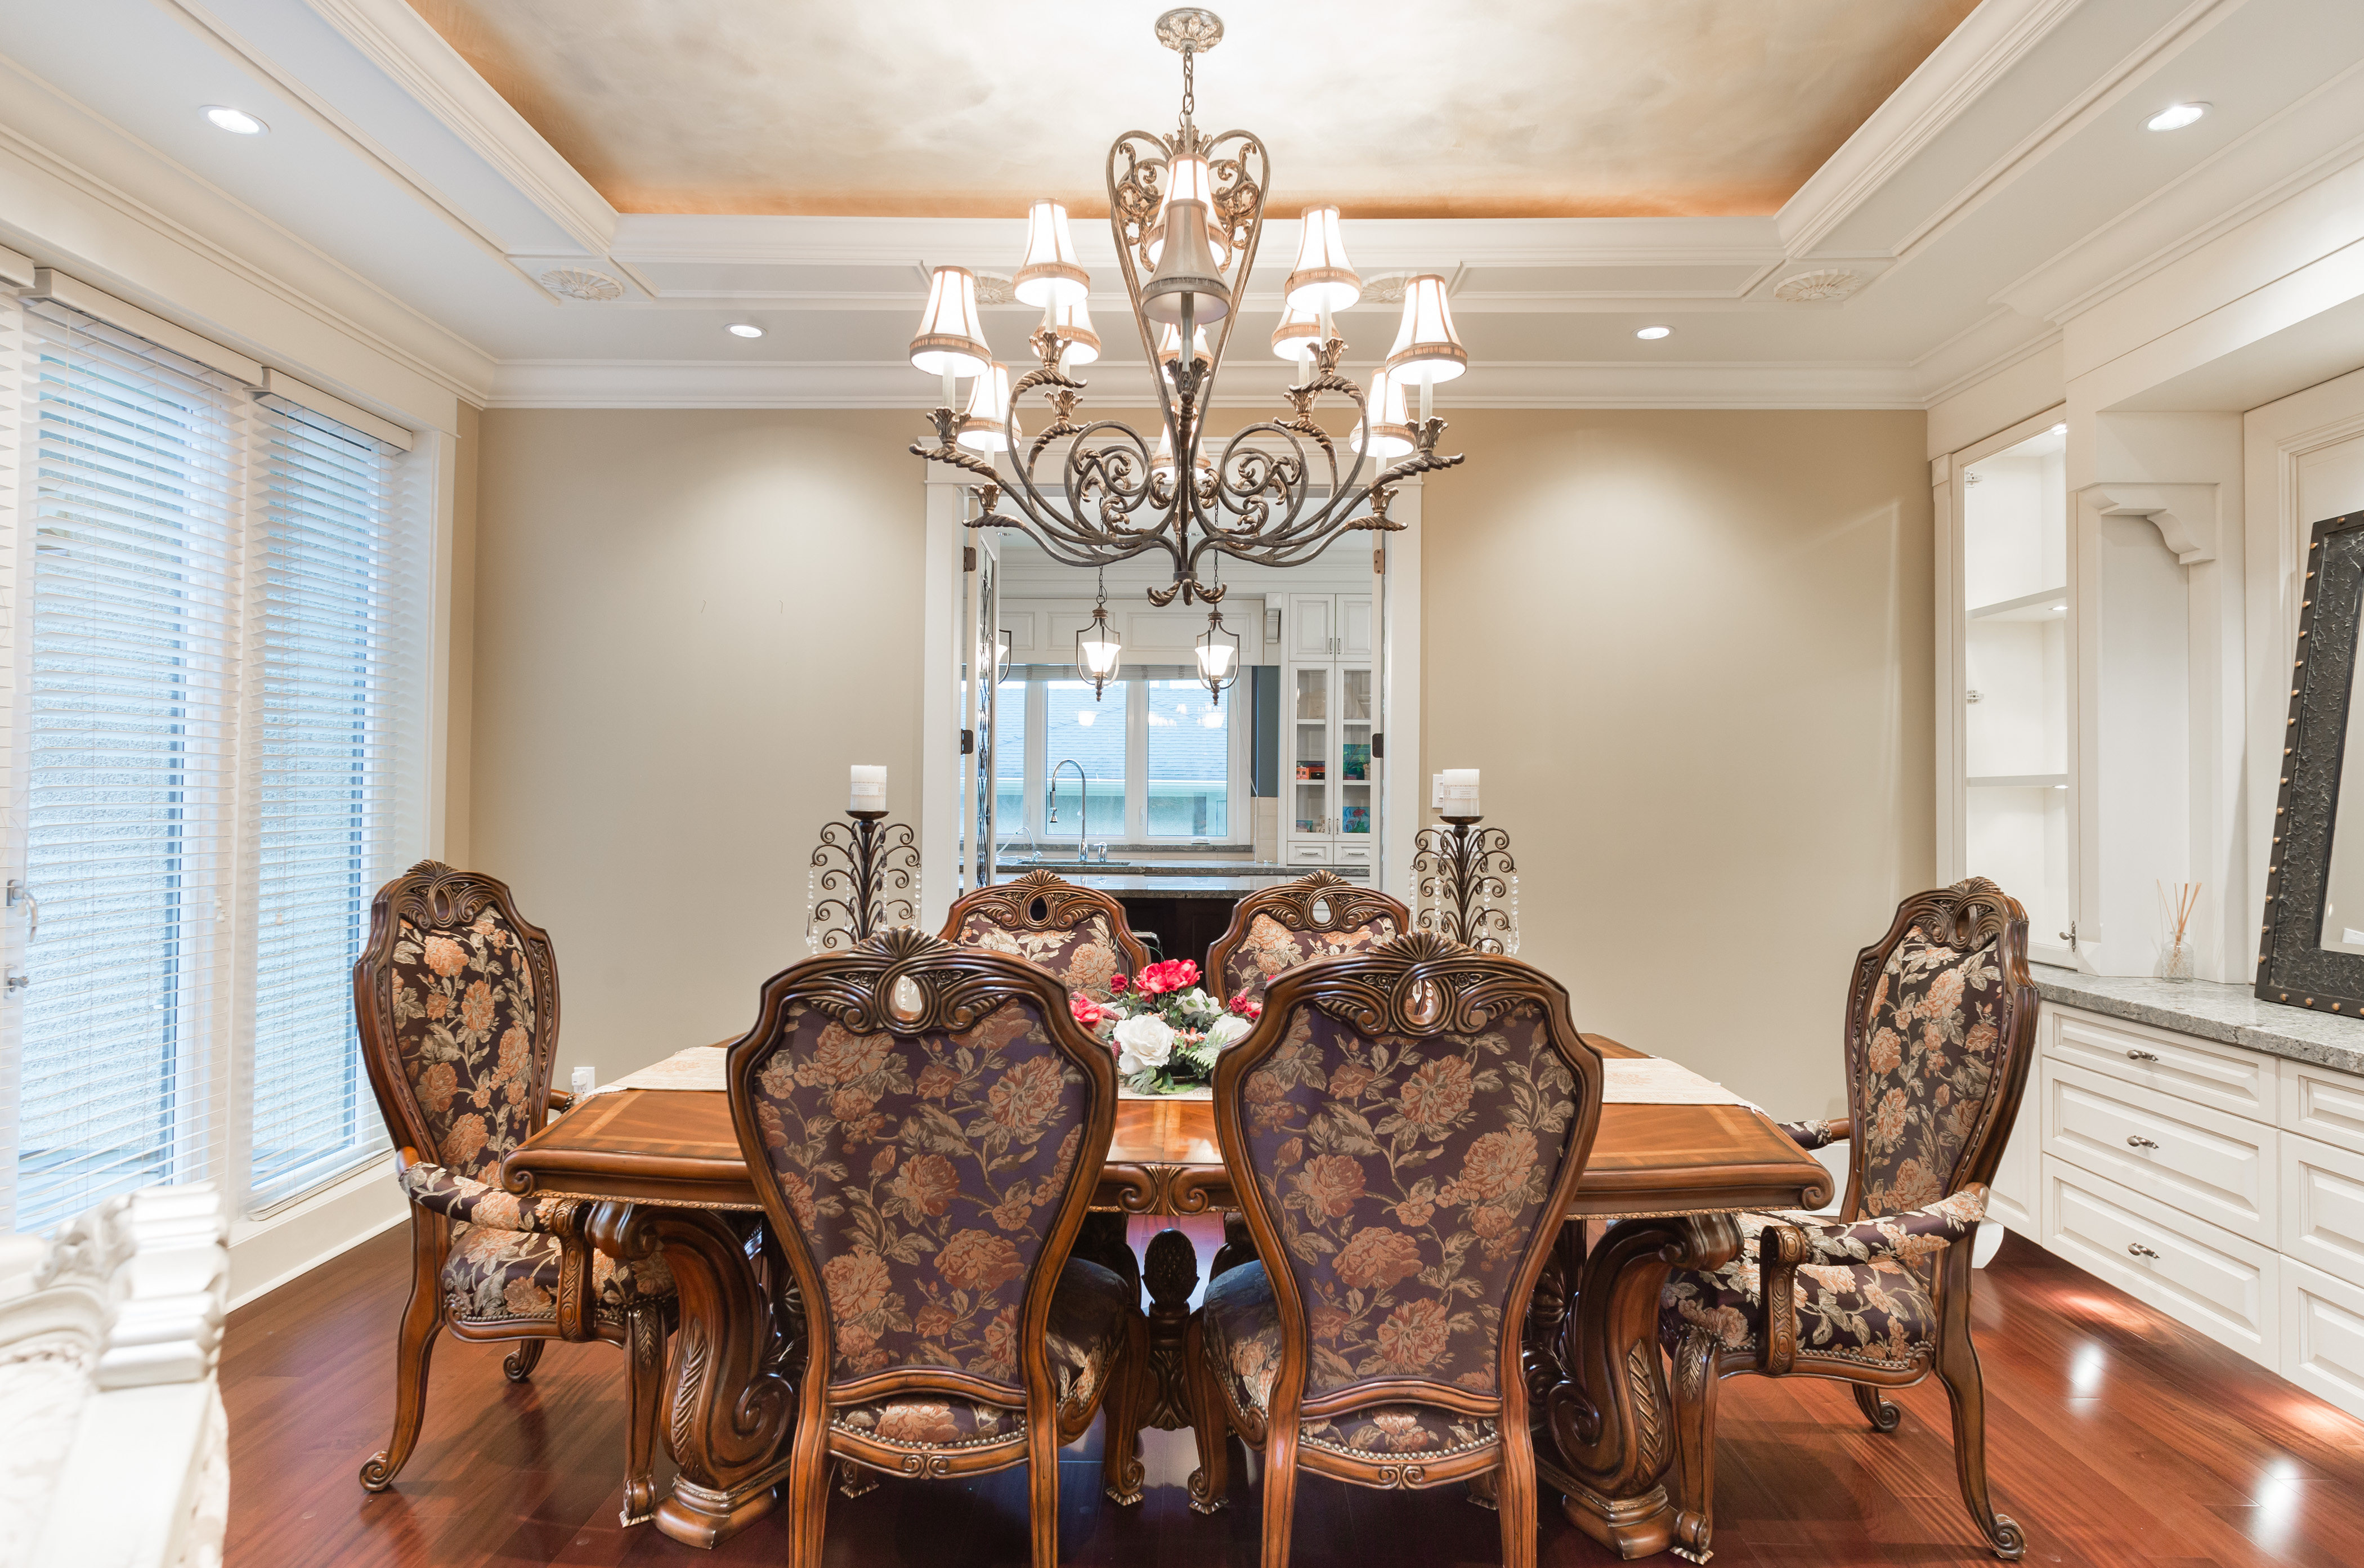 Luxury And Travel Hub: Daily Dream Home: Shaughnessy